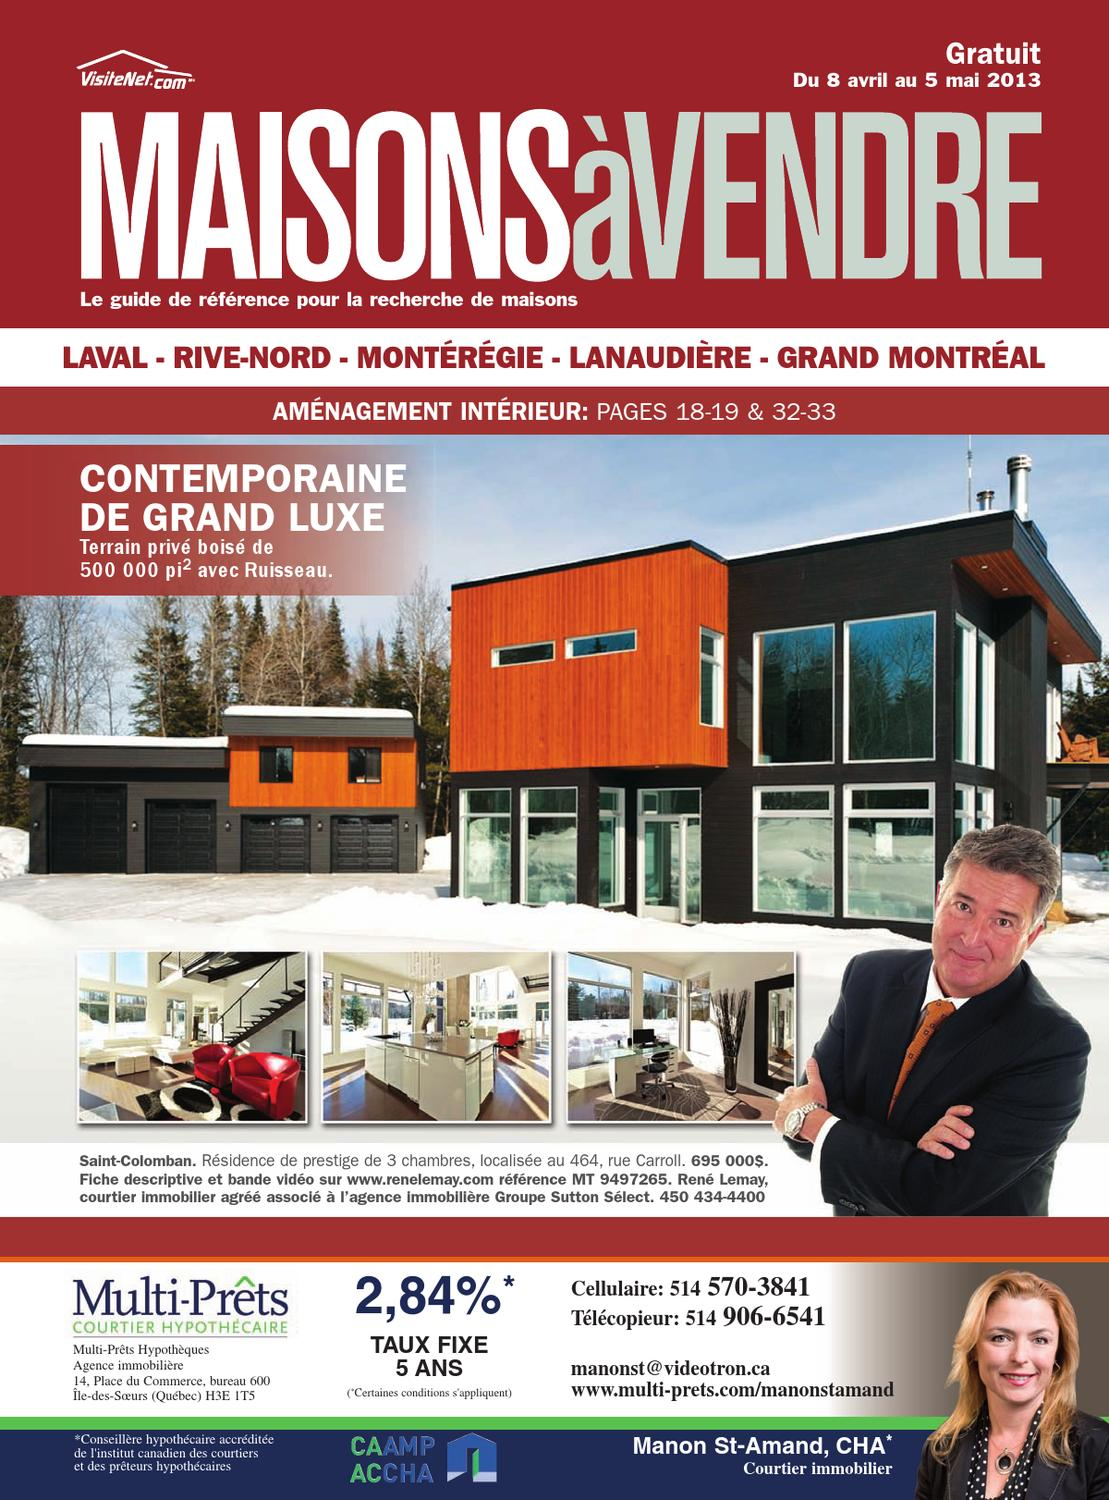 Quebec maisons vendre montreal banlieues 08 apr 2013 by nexthome issuu for Courtier immobilier prestige